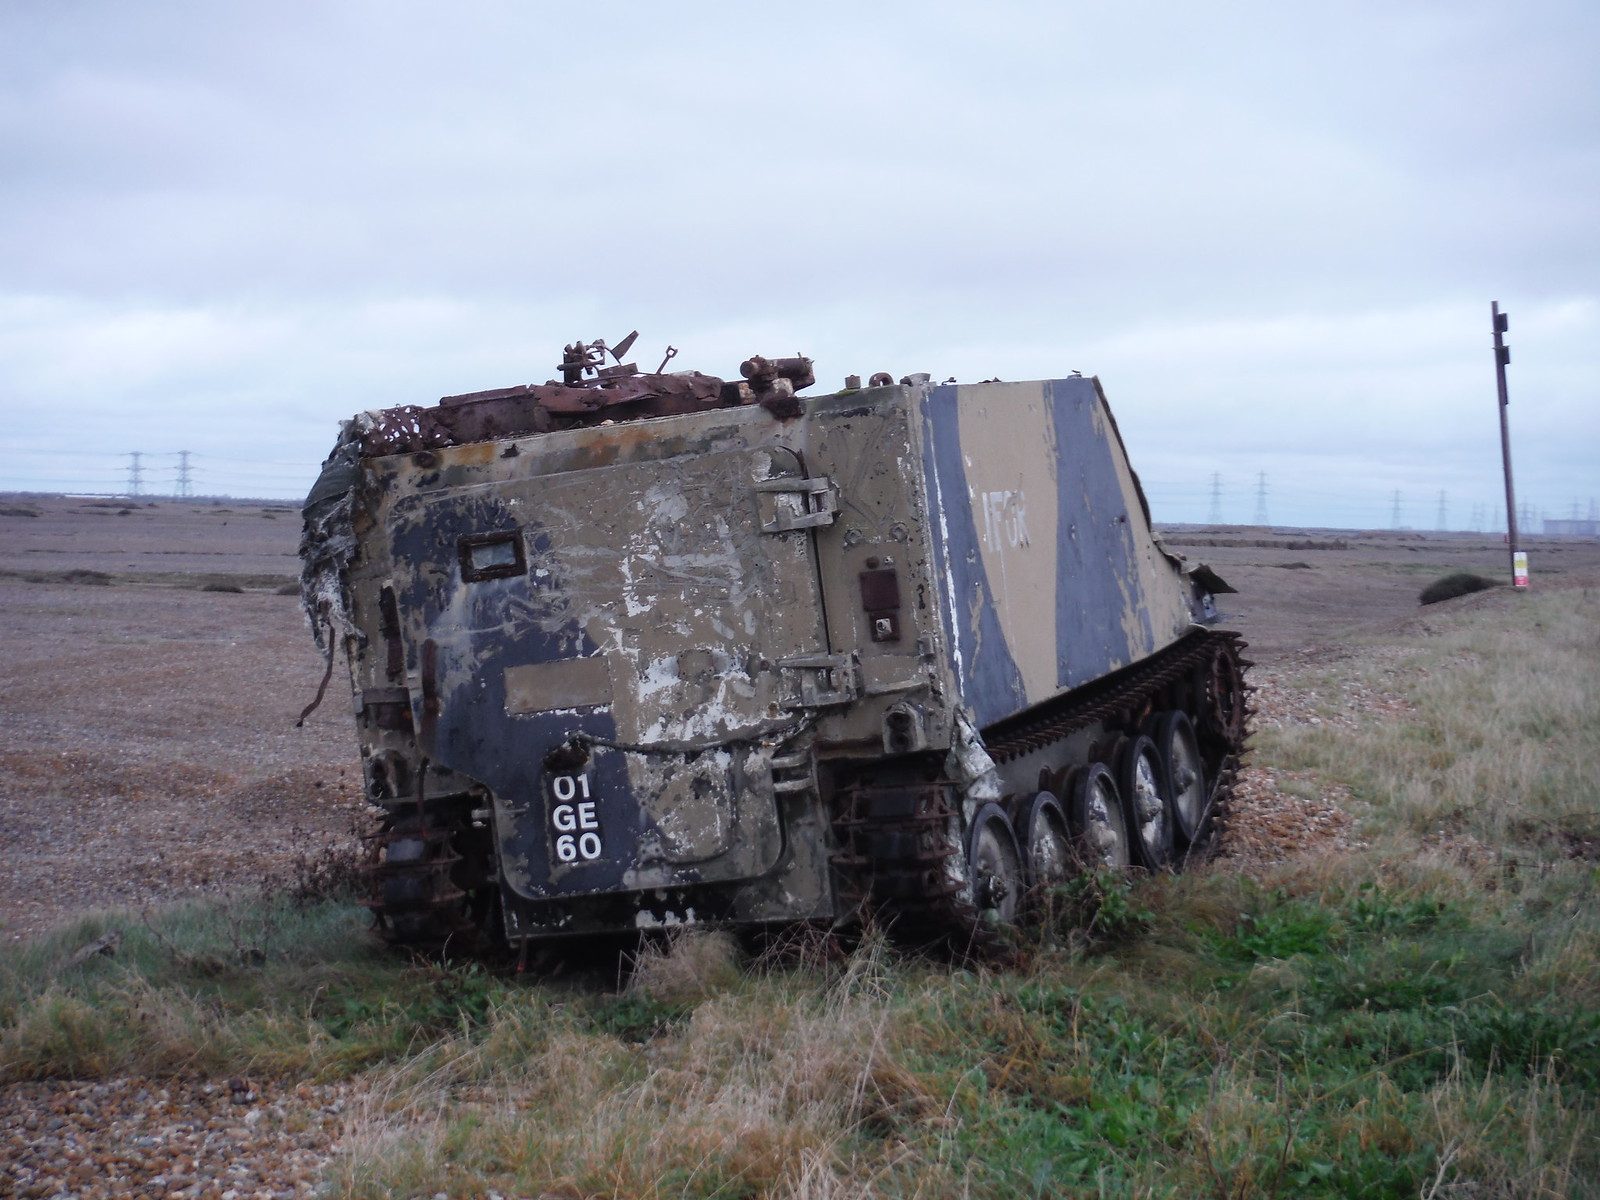 Target Tank, Lydd Ranges SWC 154 - Rye to Dungeness and Lydd-on-Sea or Lydd or Circular